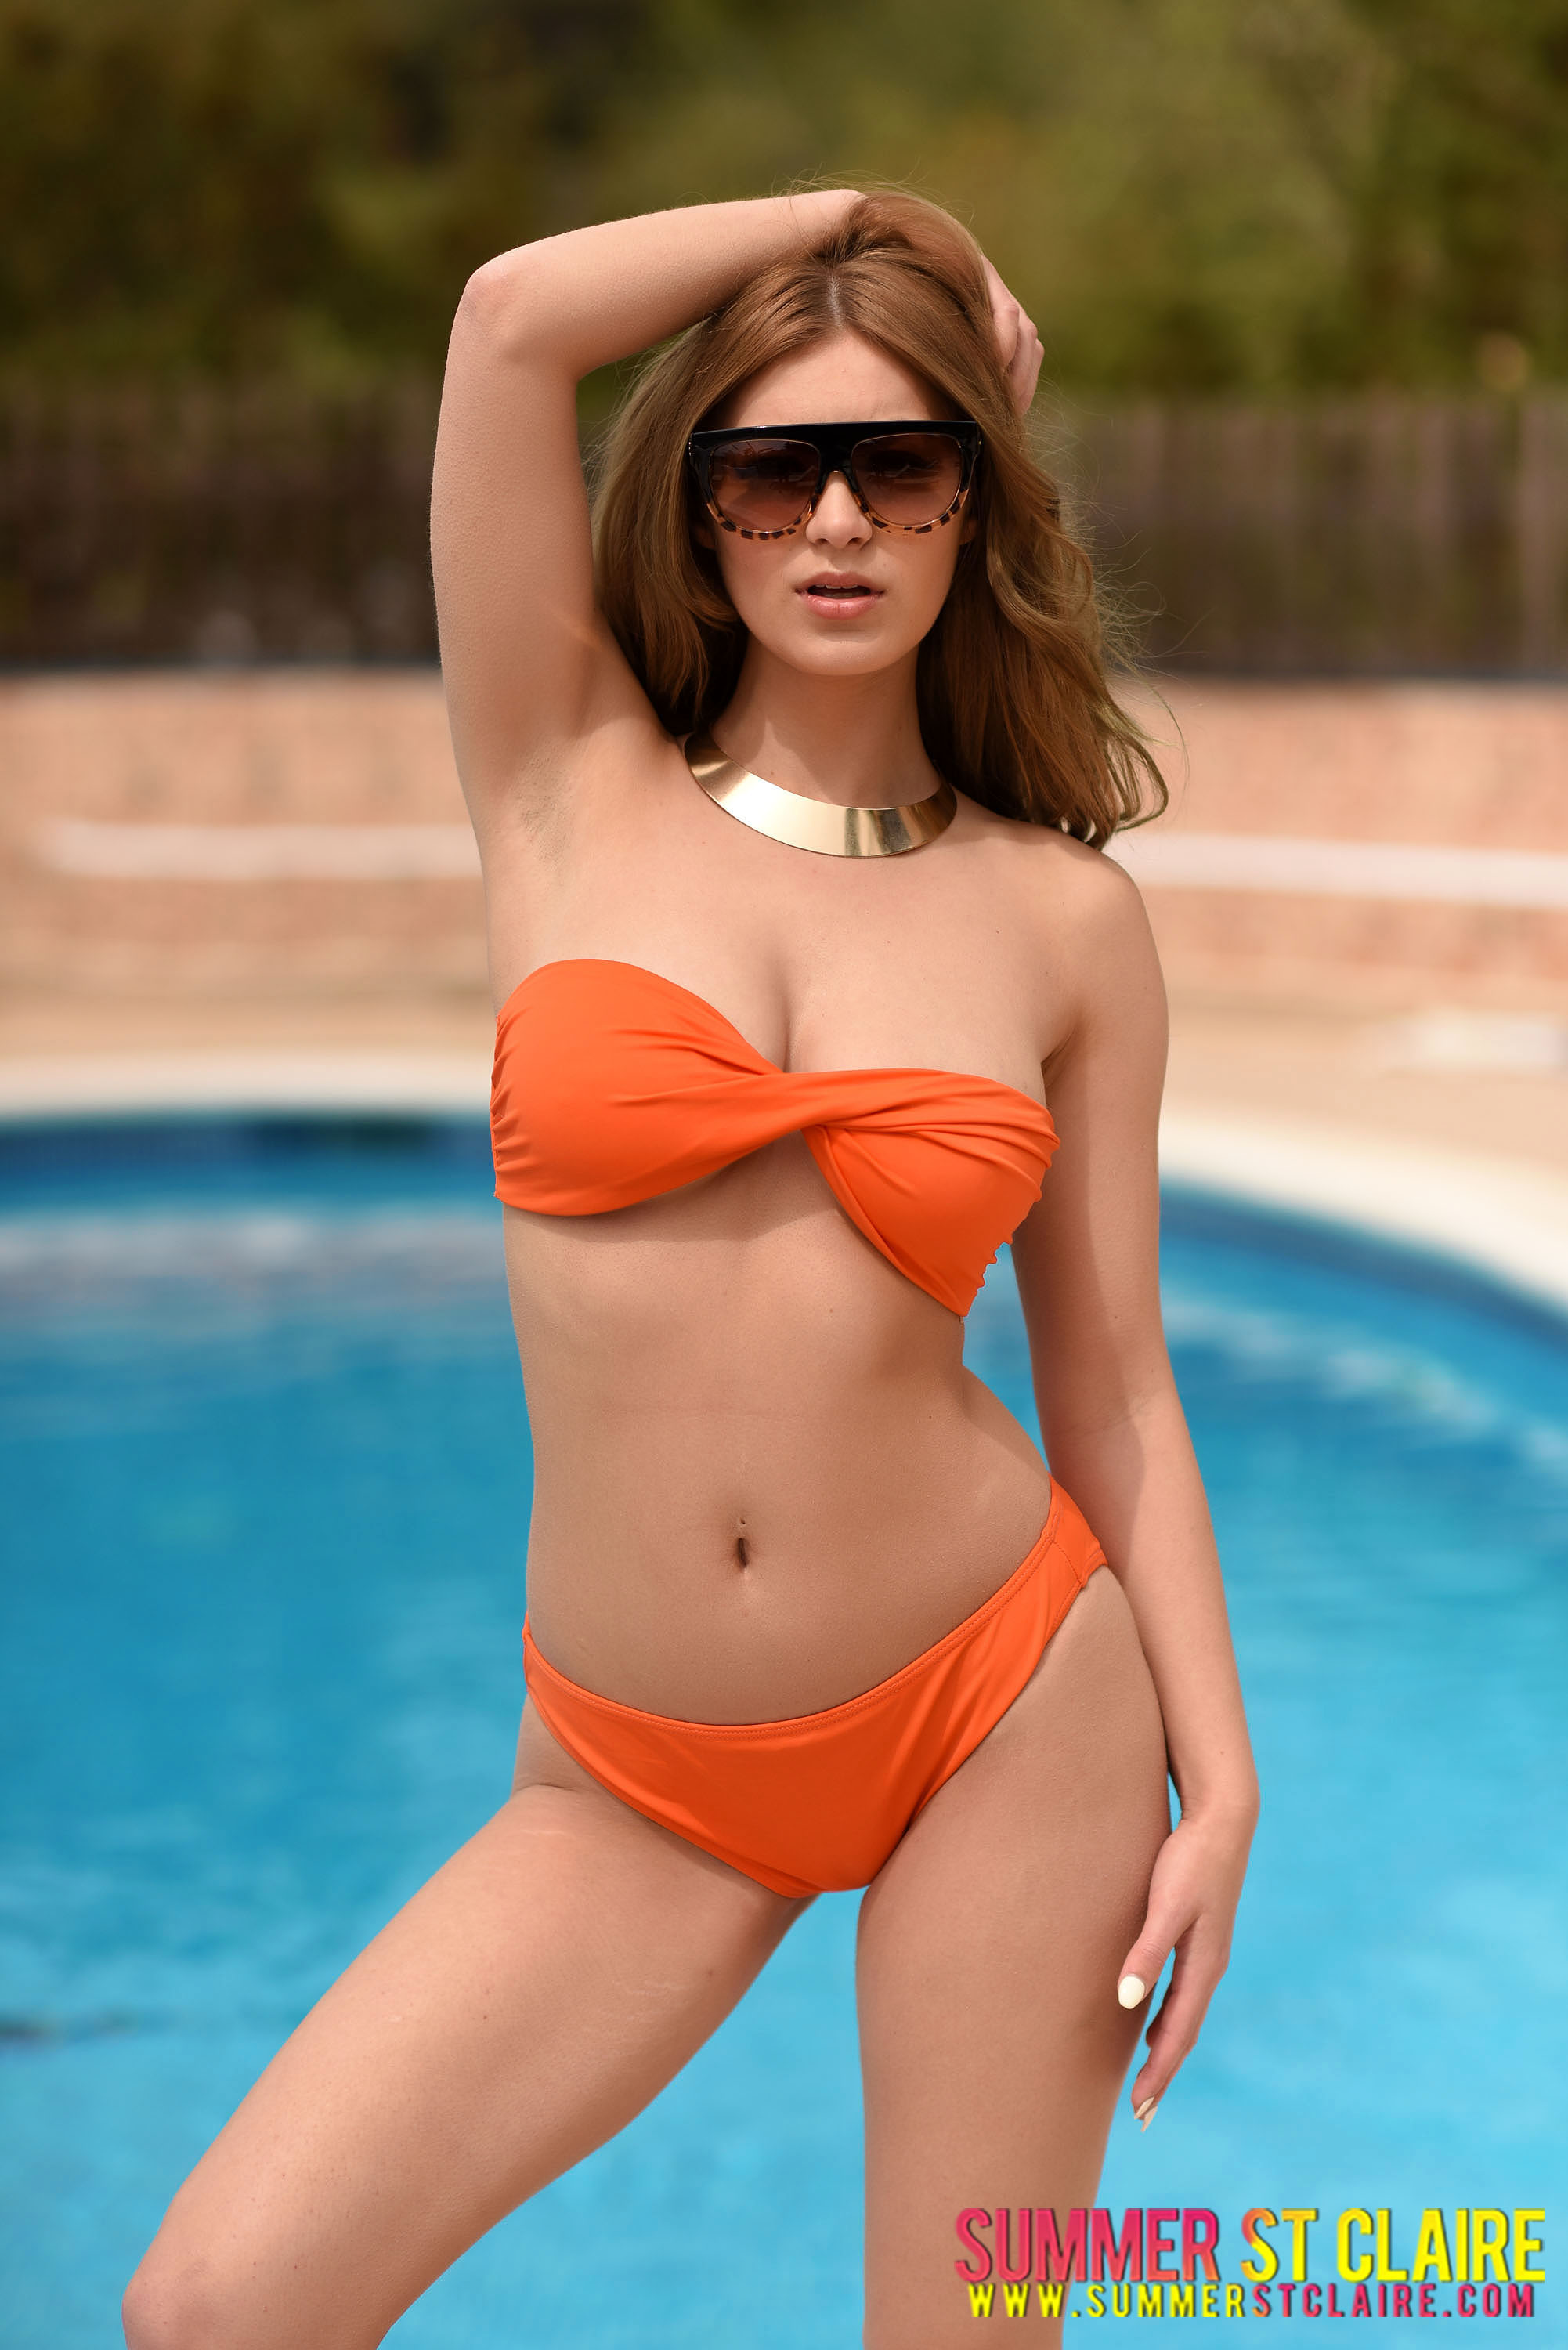 Summer St Claire Big Boobs in Orange Bikini by the Pool